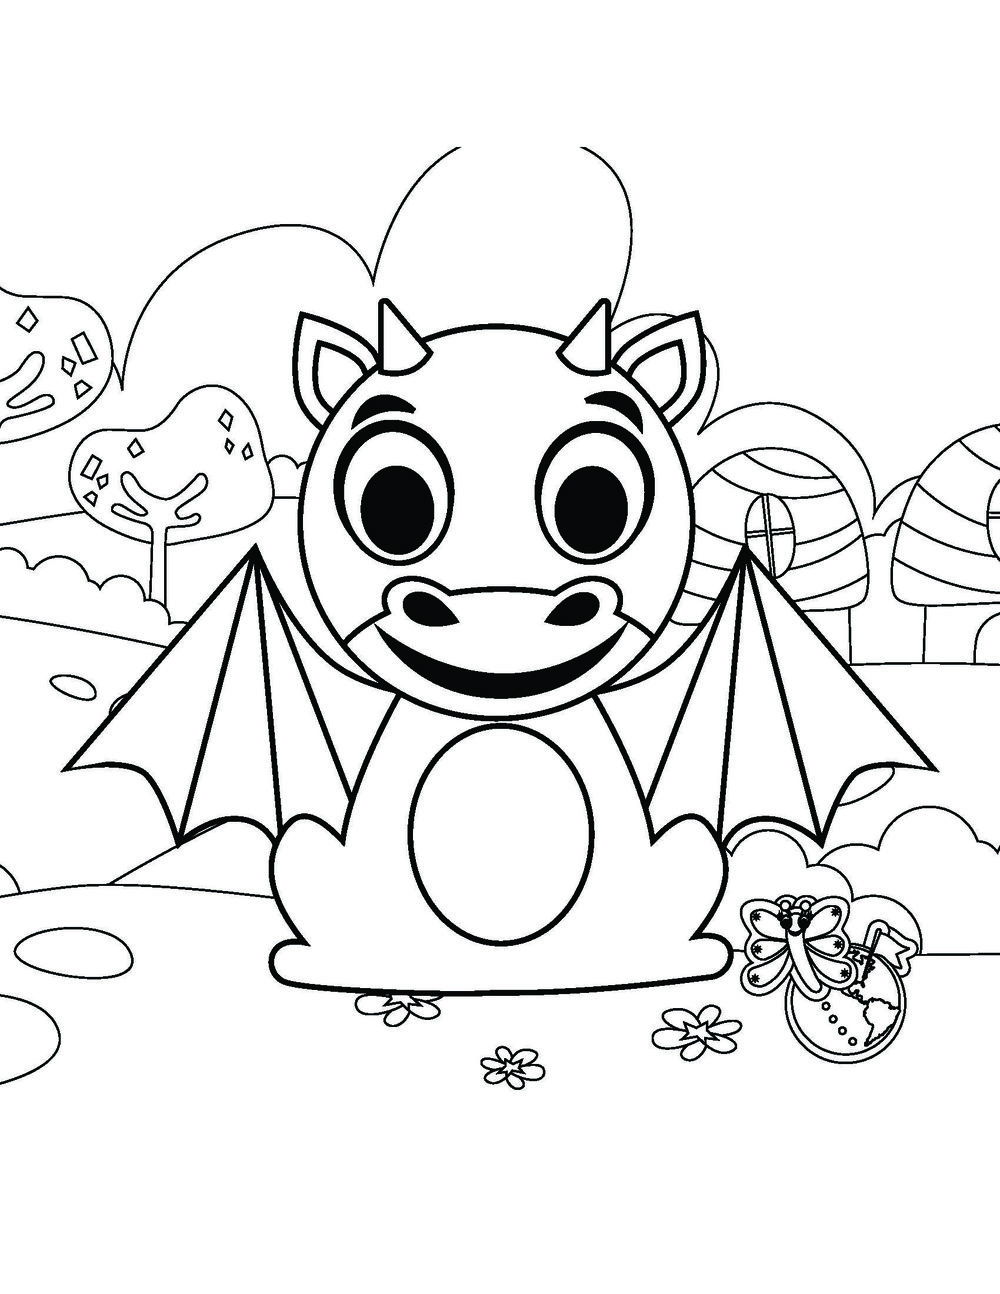 FlairFriends-Will-the-Dragon-Coloring-Page.jpg